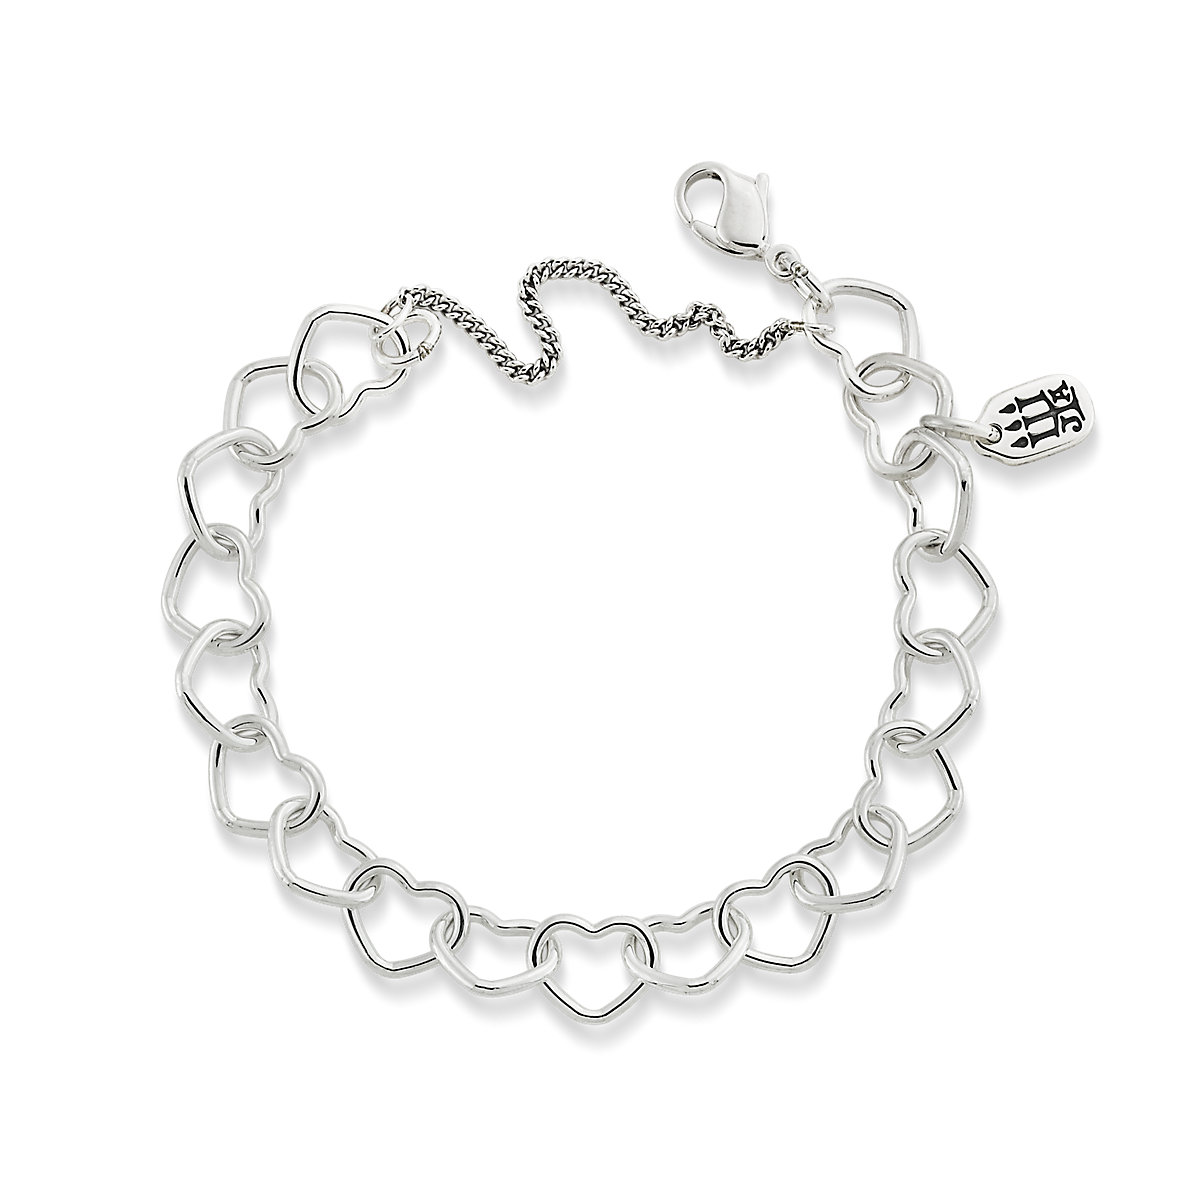 silver ohsocherished cherished original the oh so by knot tying product sterling bracelet